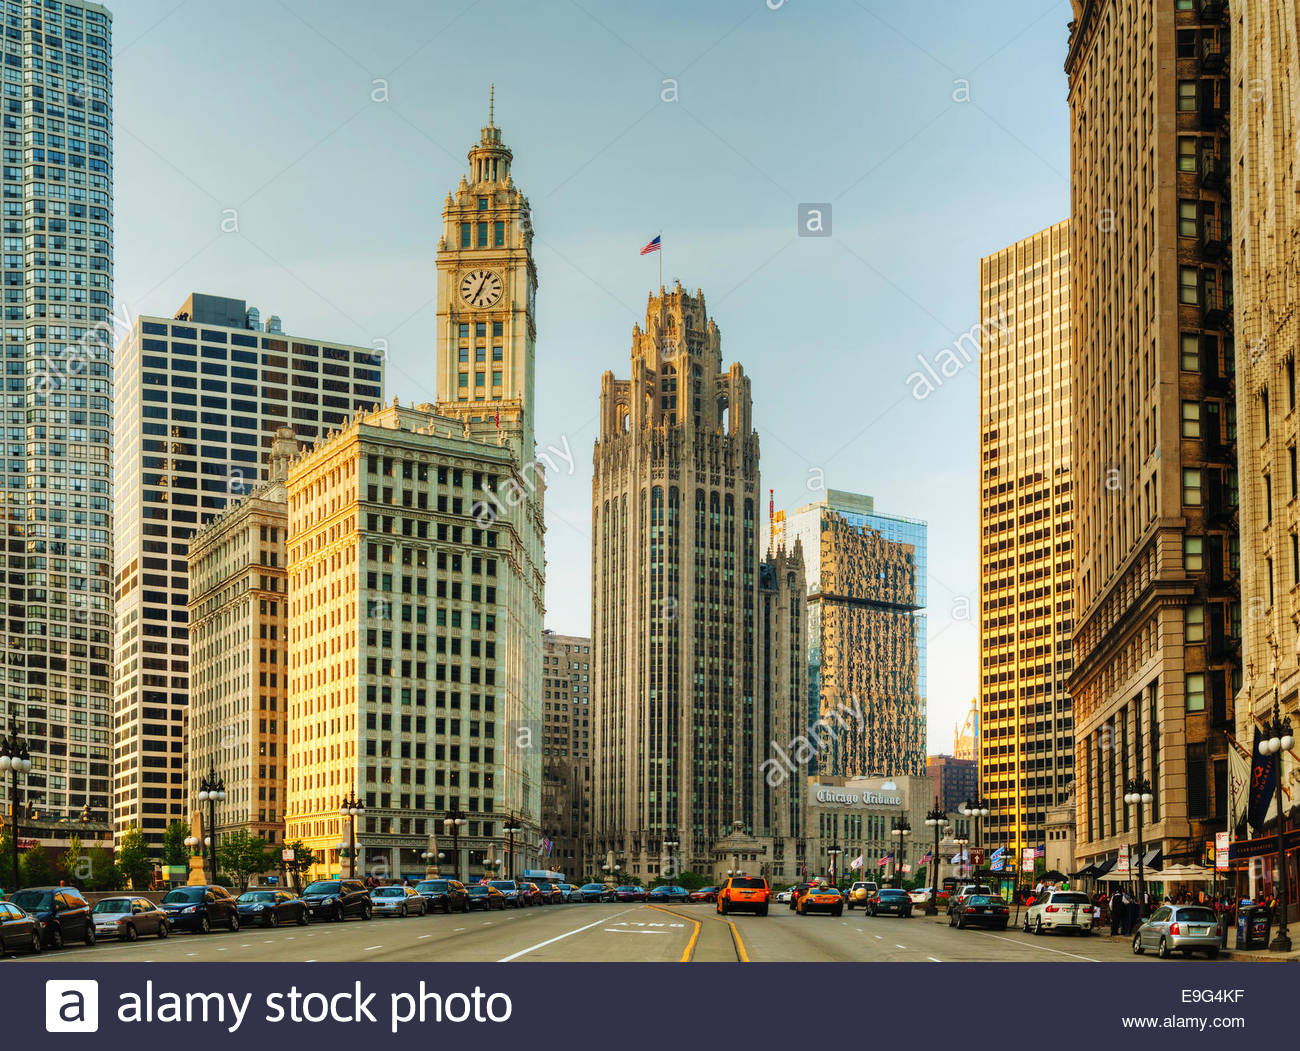 Downtown Chicago with  the Wrigley building - Stock Image